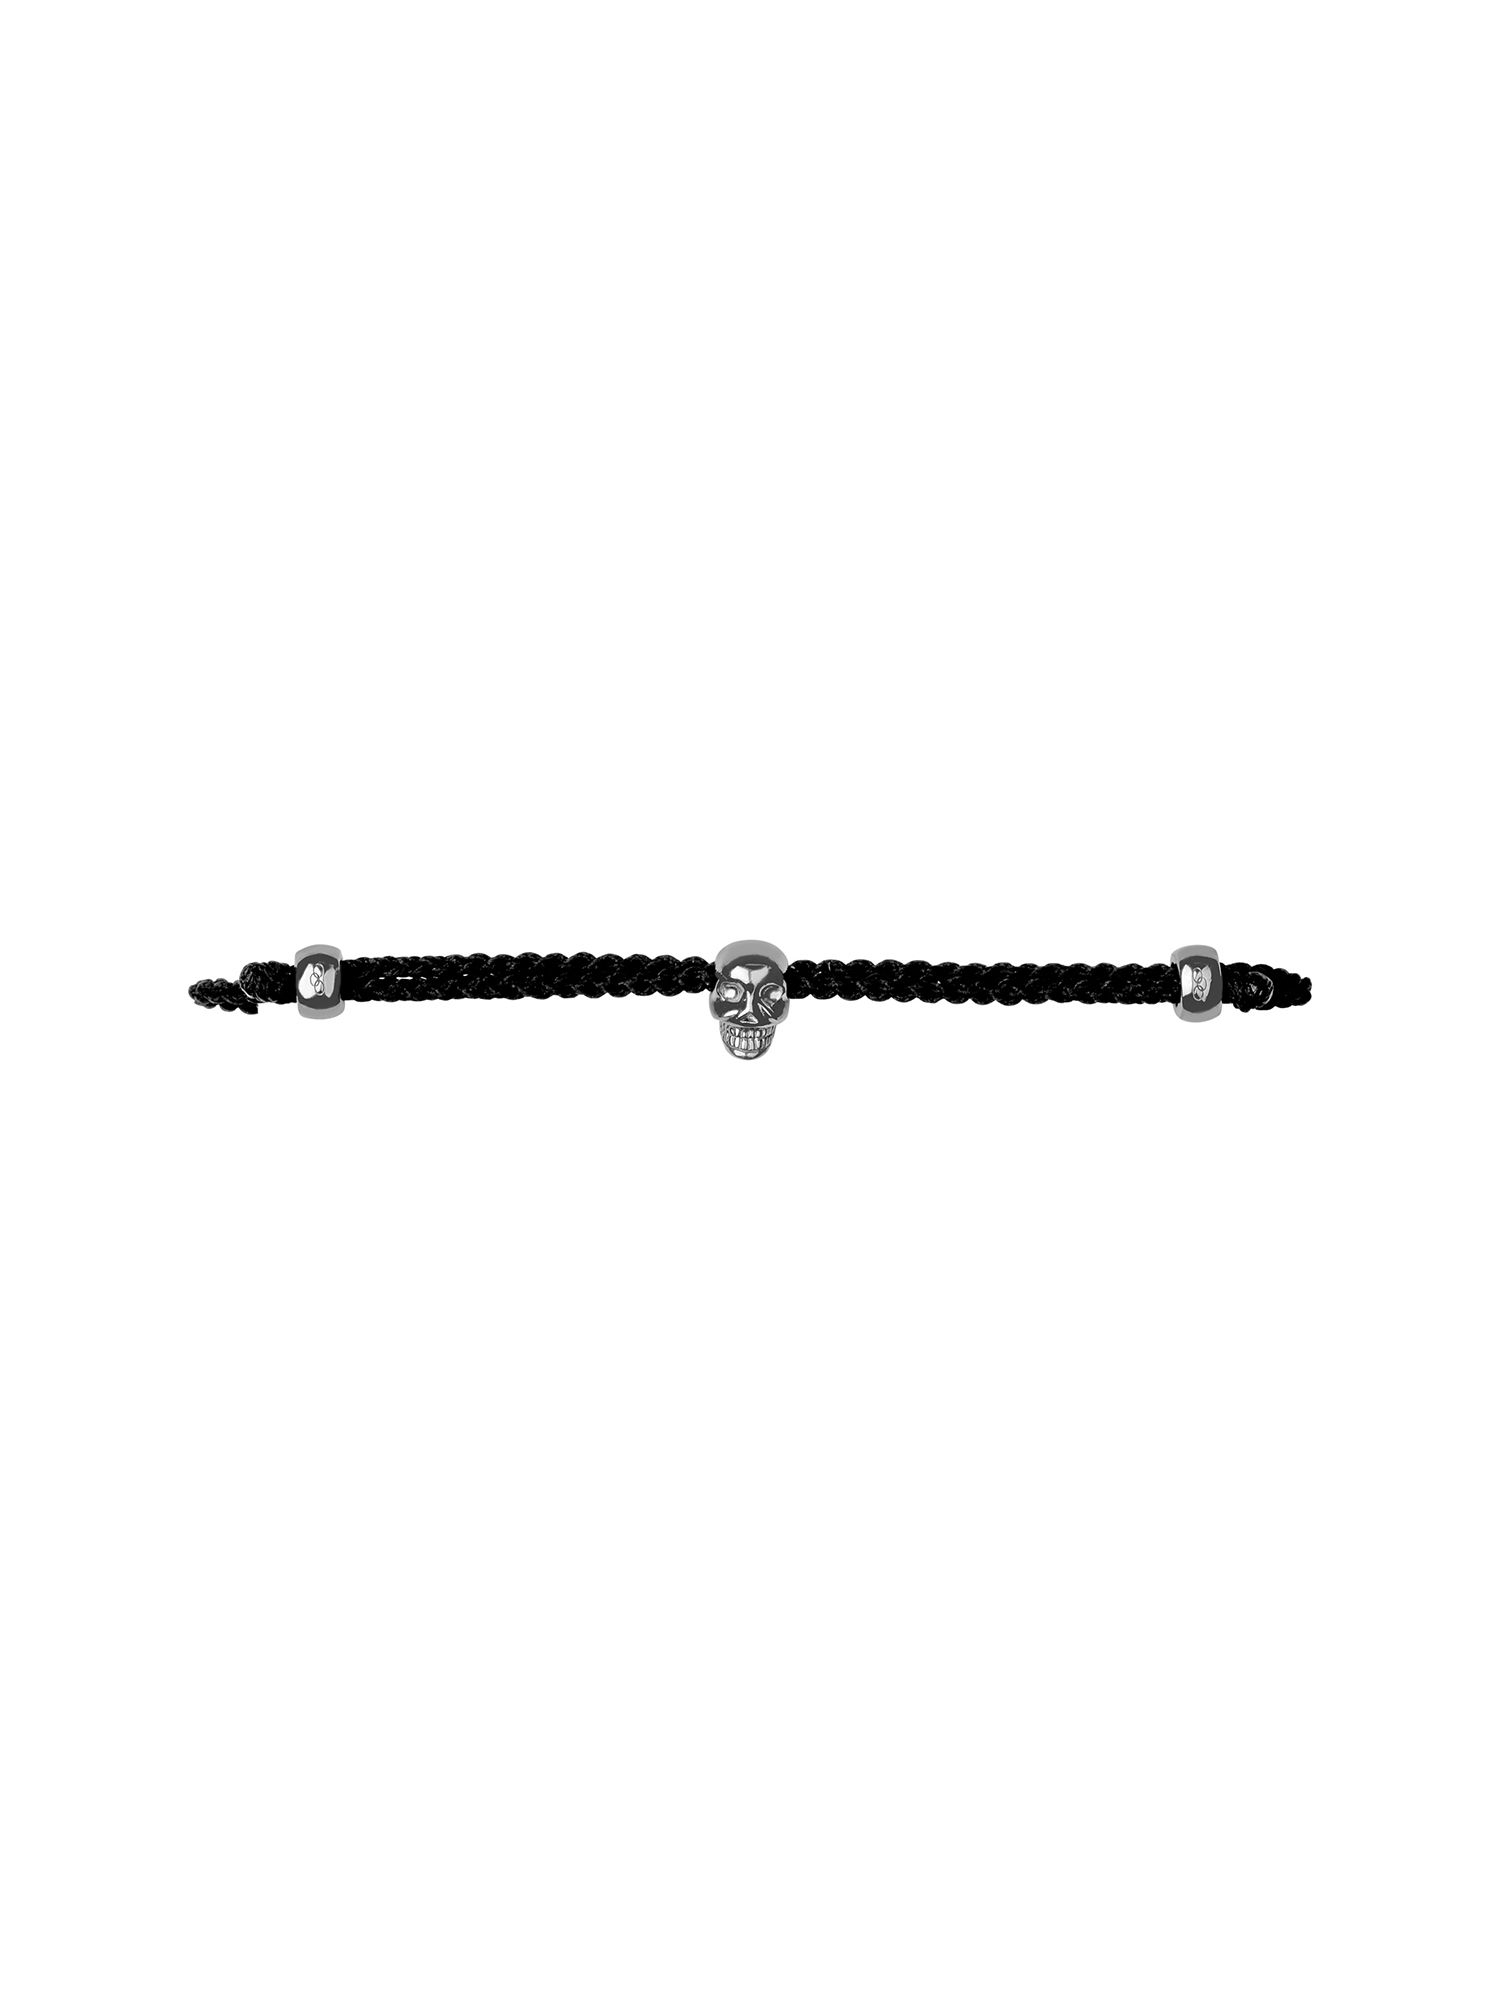 Mini black oxidised skull cord bracelet